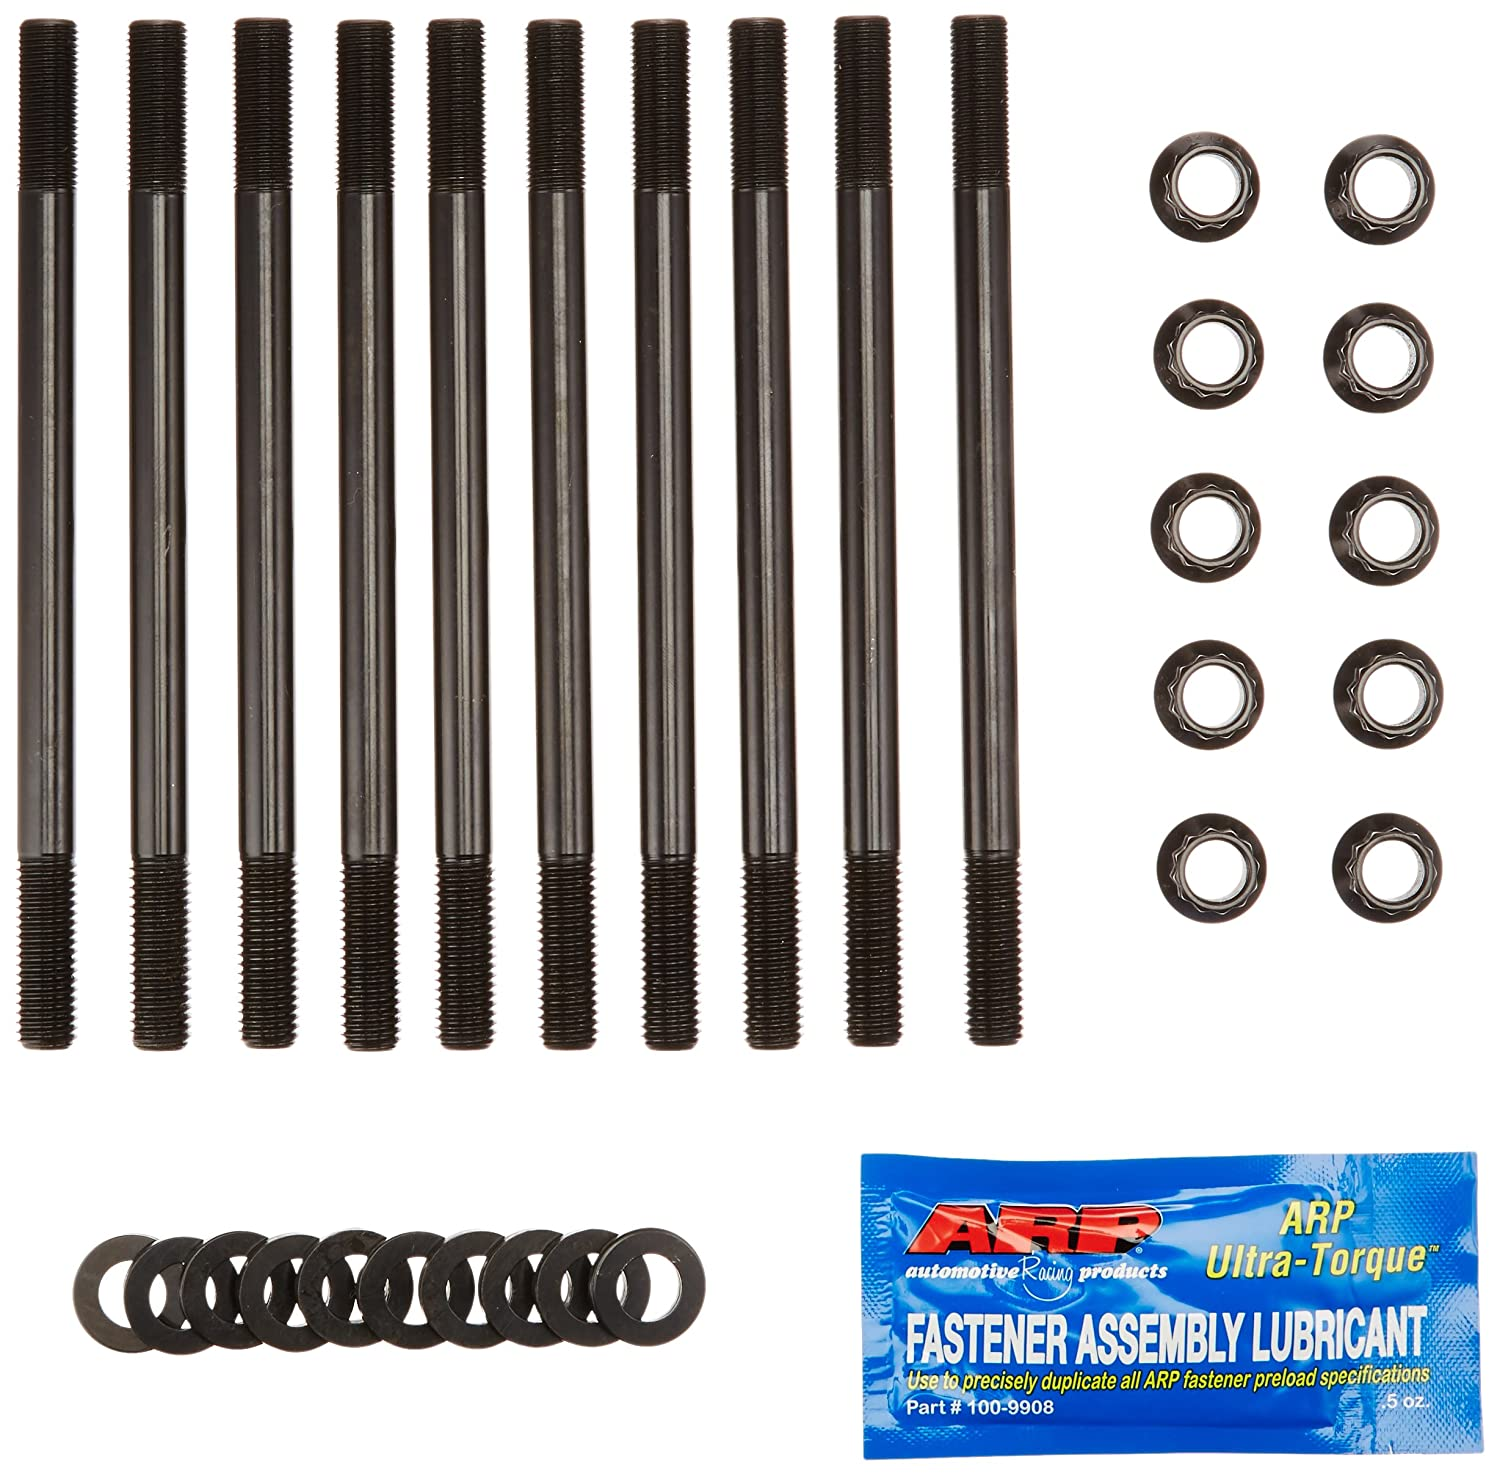 ARP 202-4303 12-Point Head Stud Kit